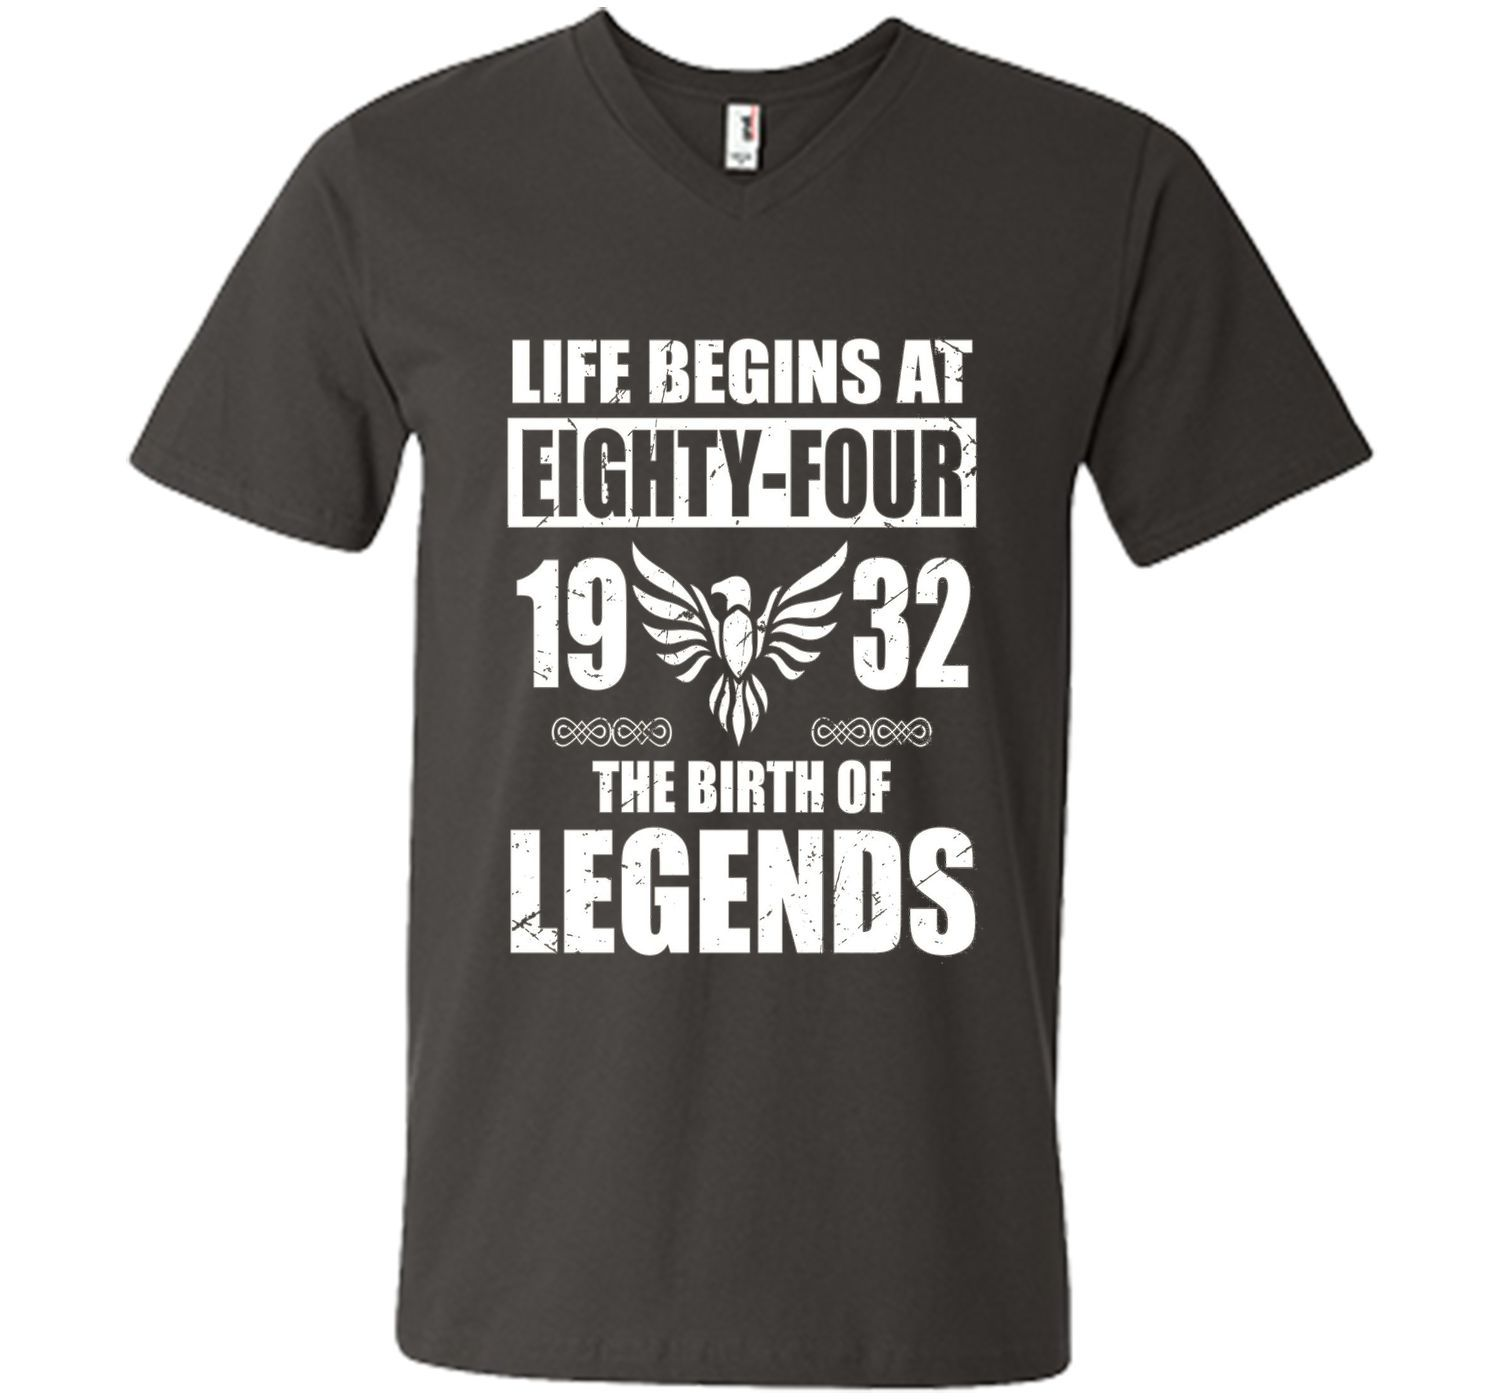 Life Begins At 84, 1932 The Birth Of Legends, Birthday Gifts